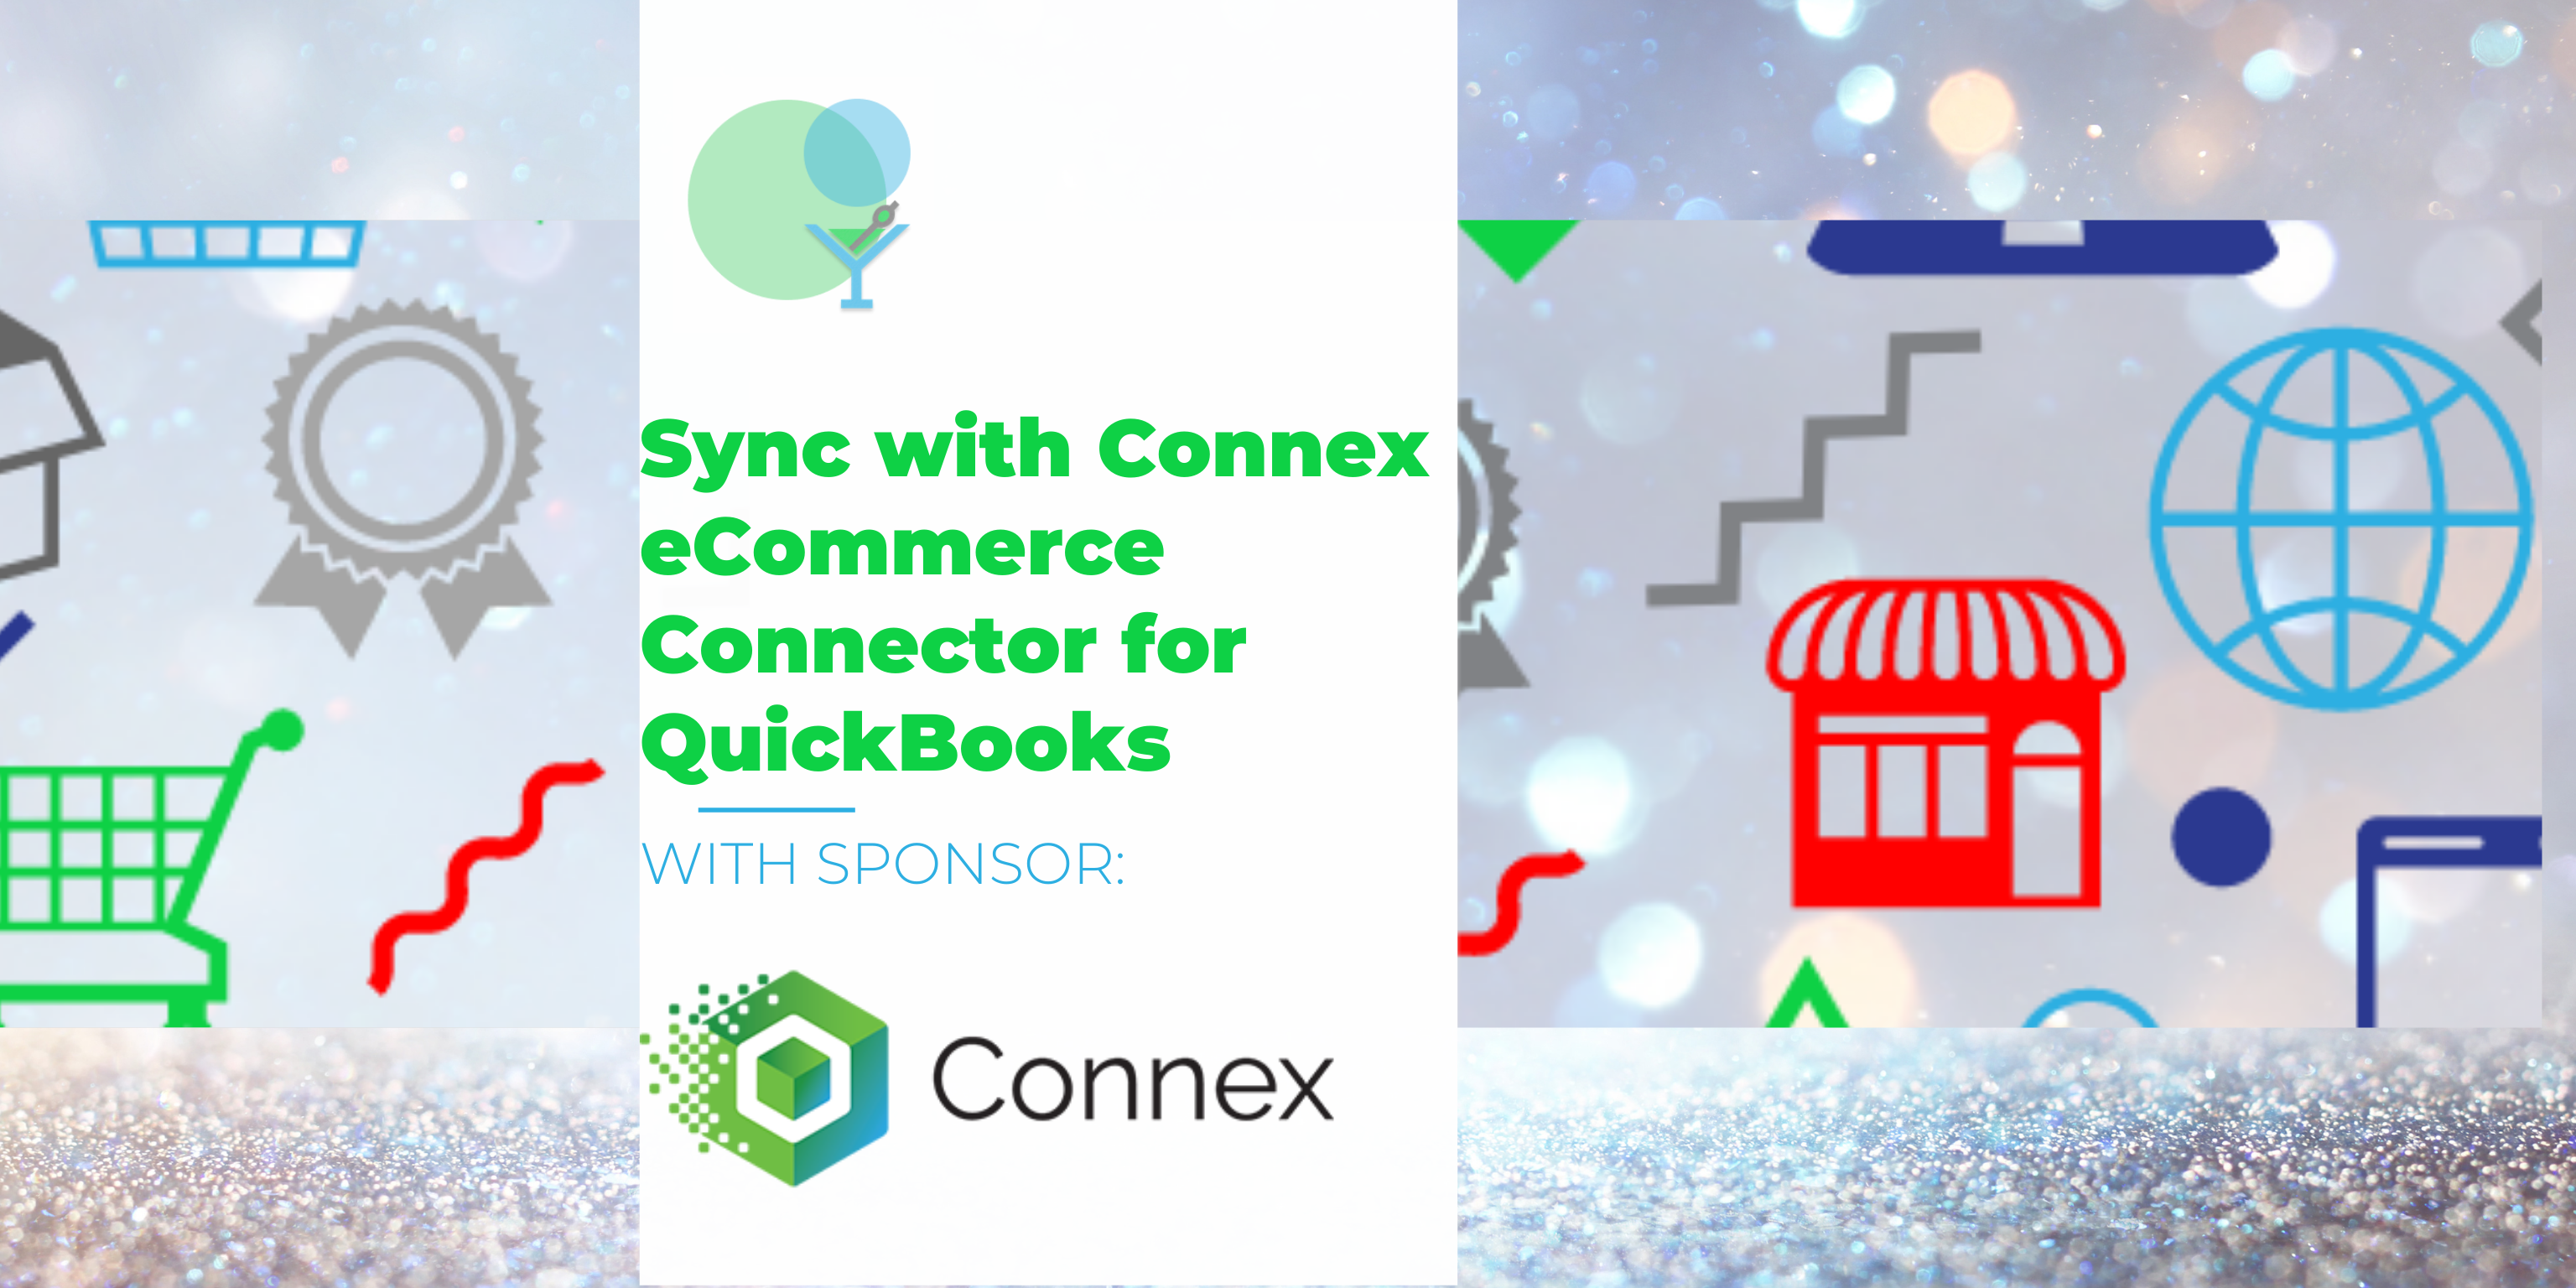 Simplify eCommerce Accounting with Syn with Connex